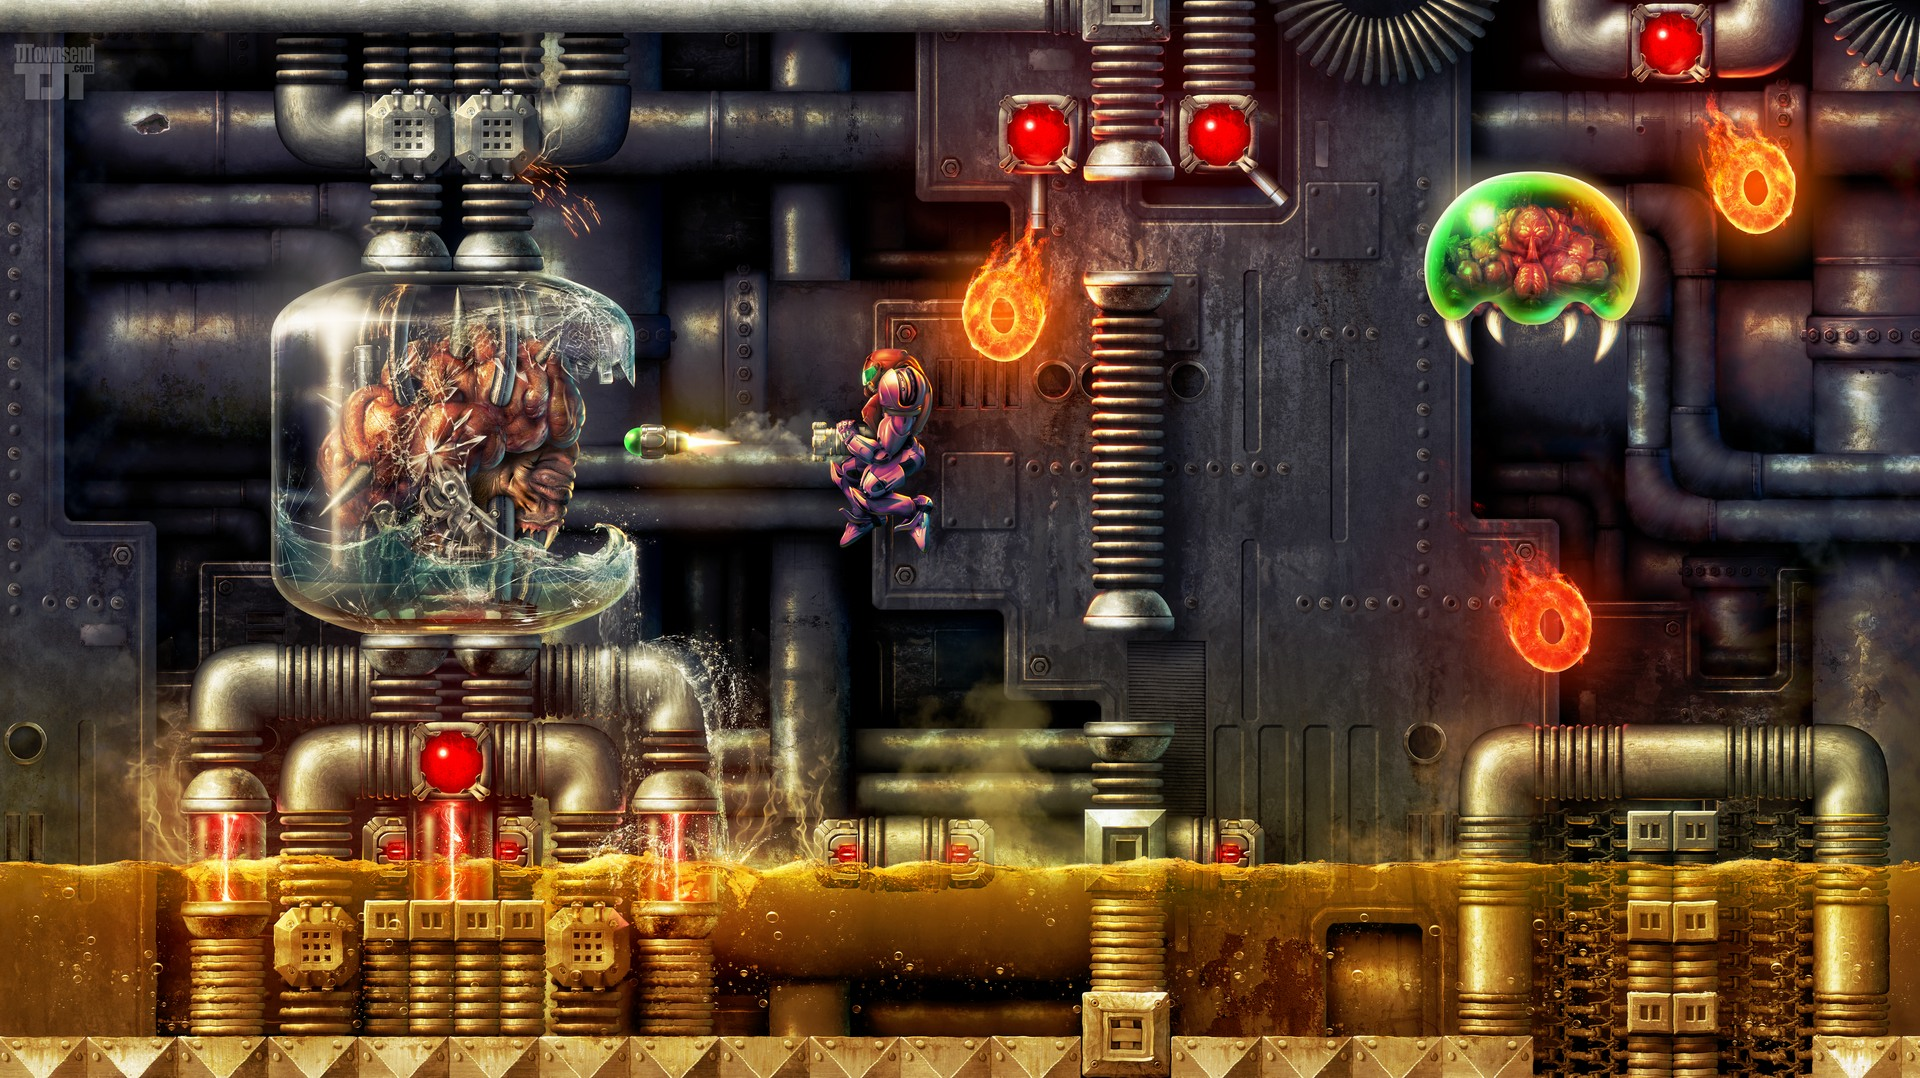 http://www.dsogaming.com/wp-content/uploads/2013/03/super_metroid___depths_of_tourian_by_elemental79-d5z66m9.jpg